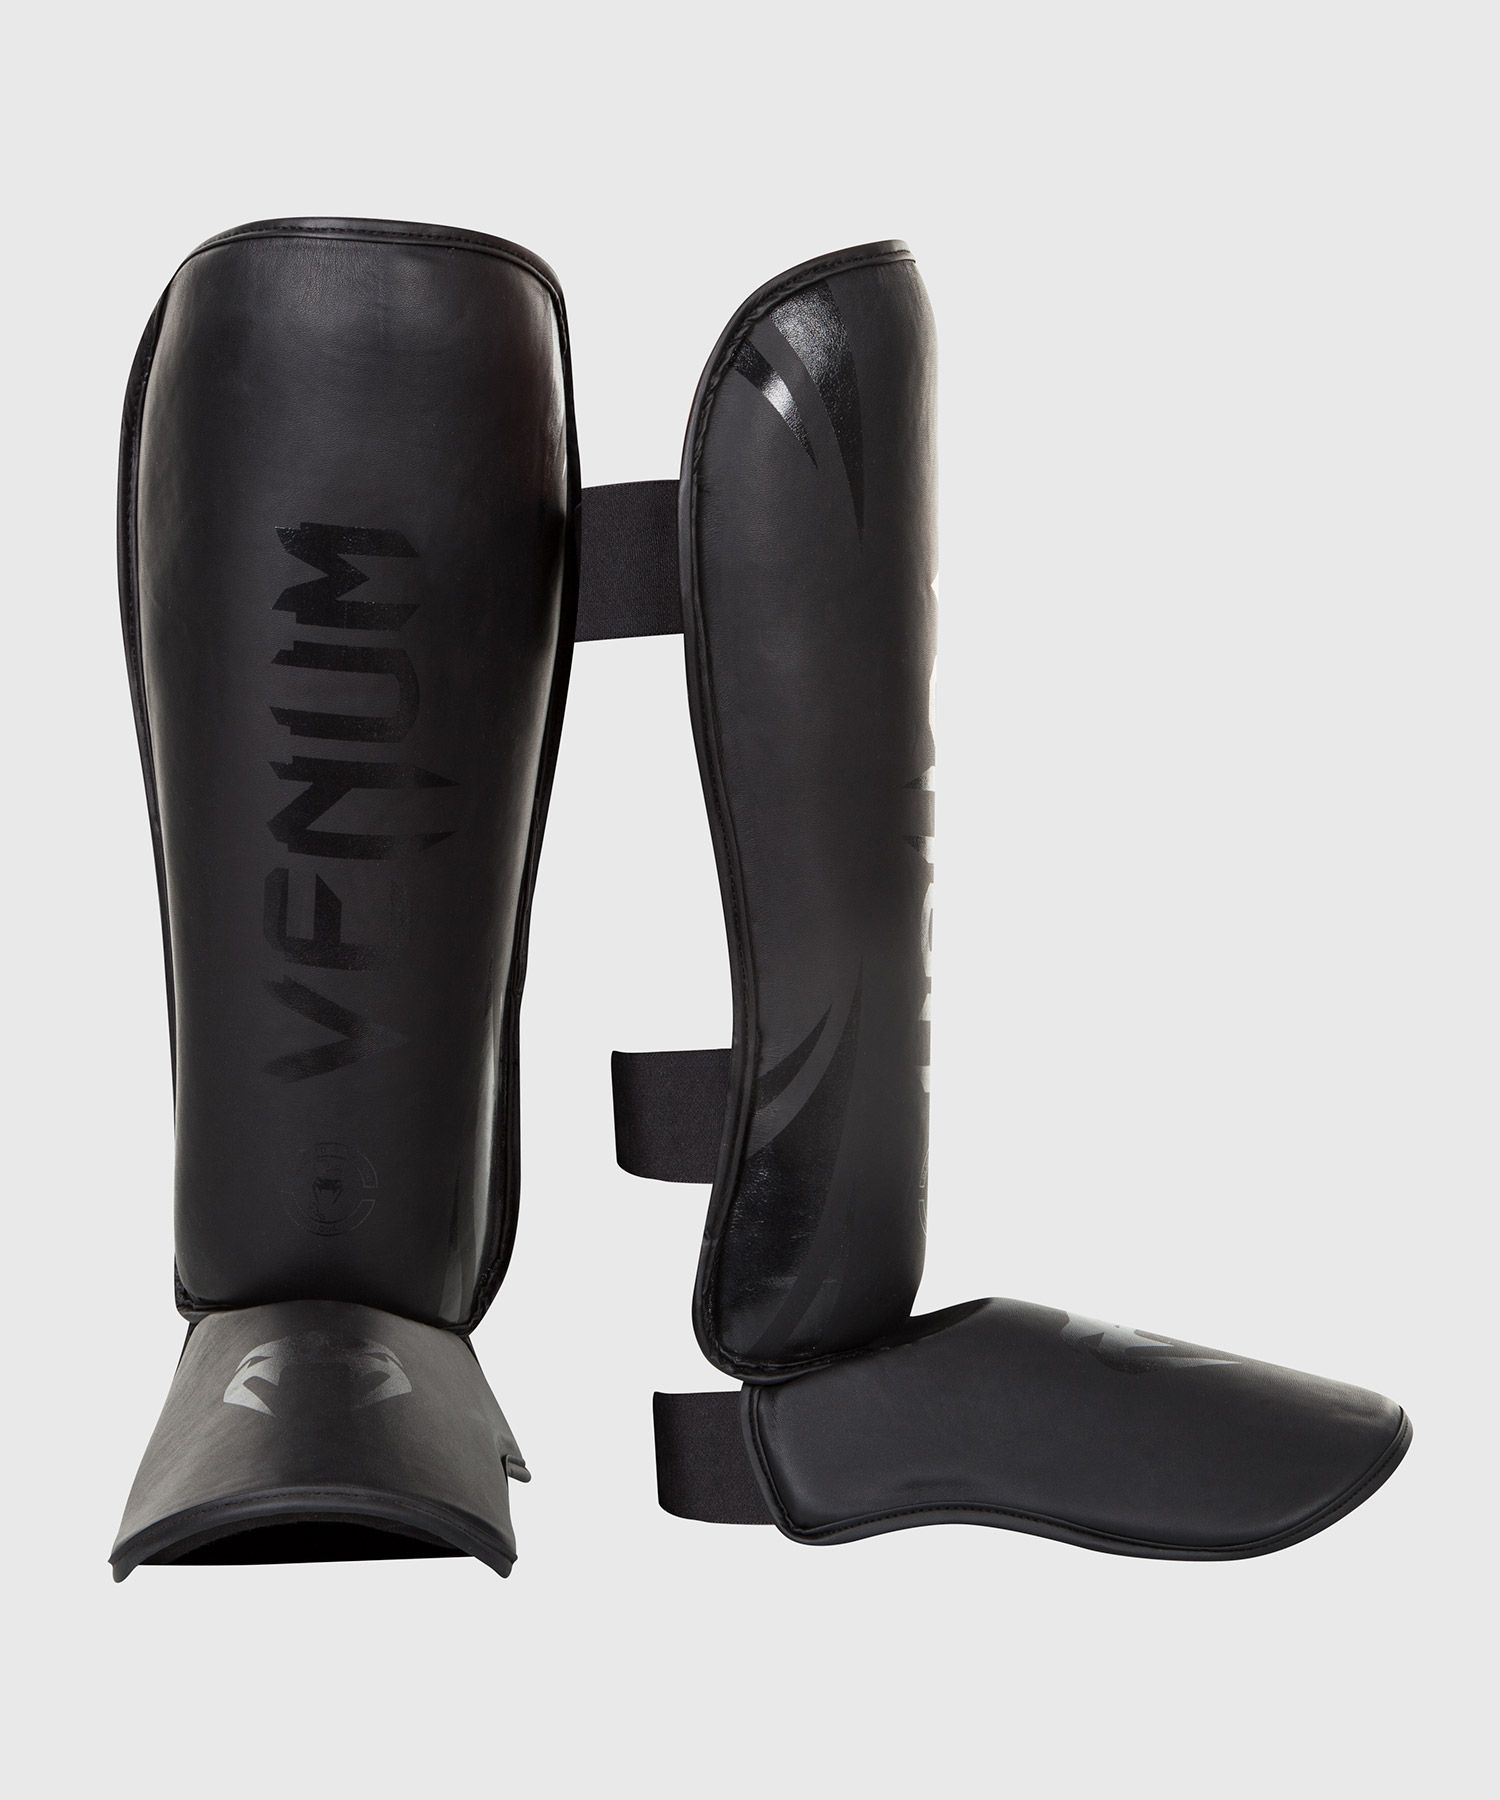 Venum Challenger Standup Shin Guards - Matte/Black